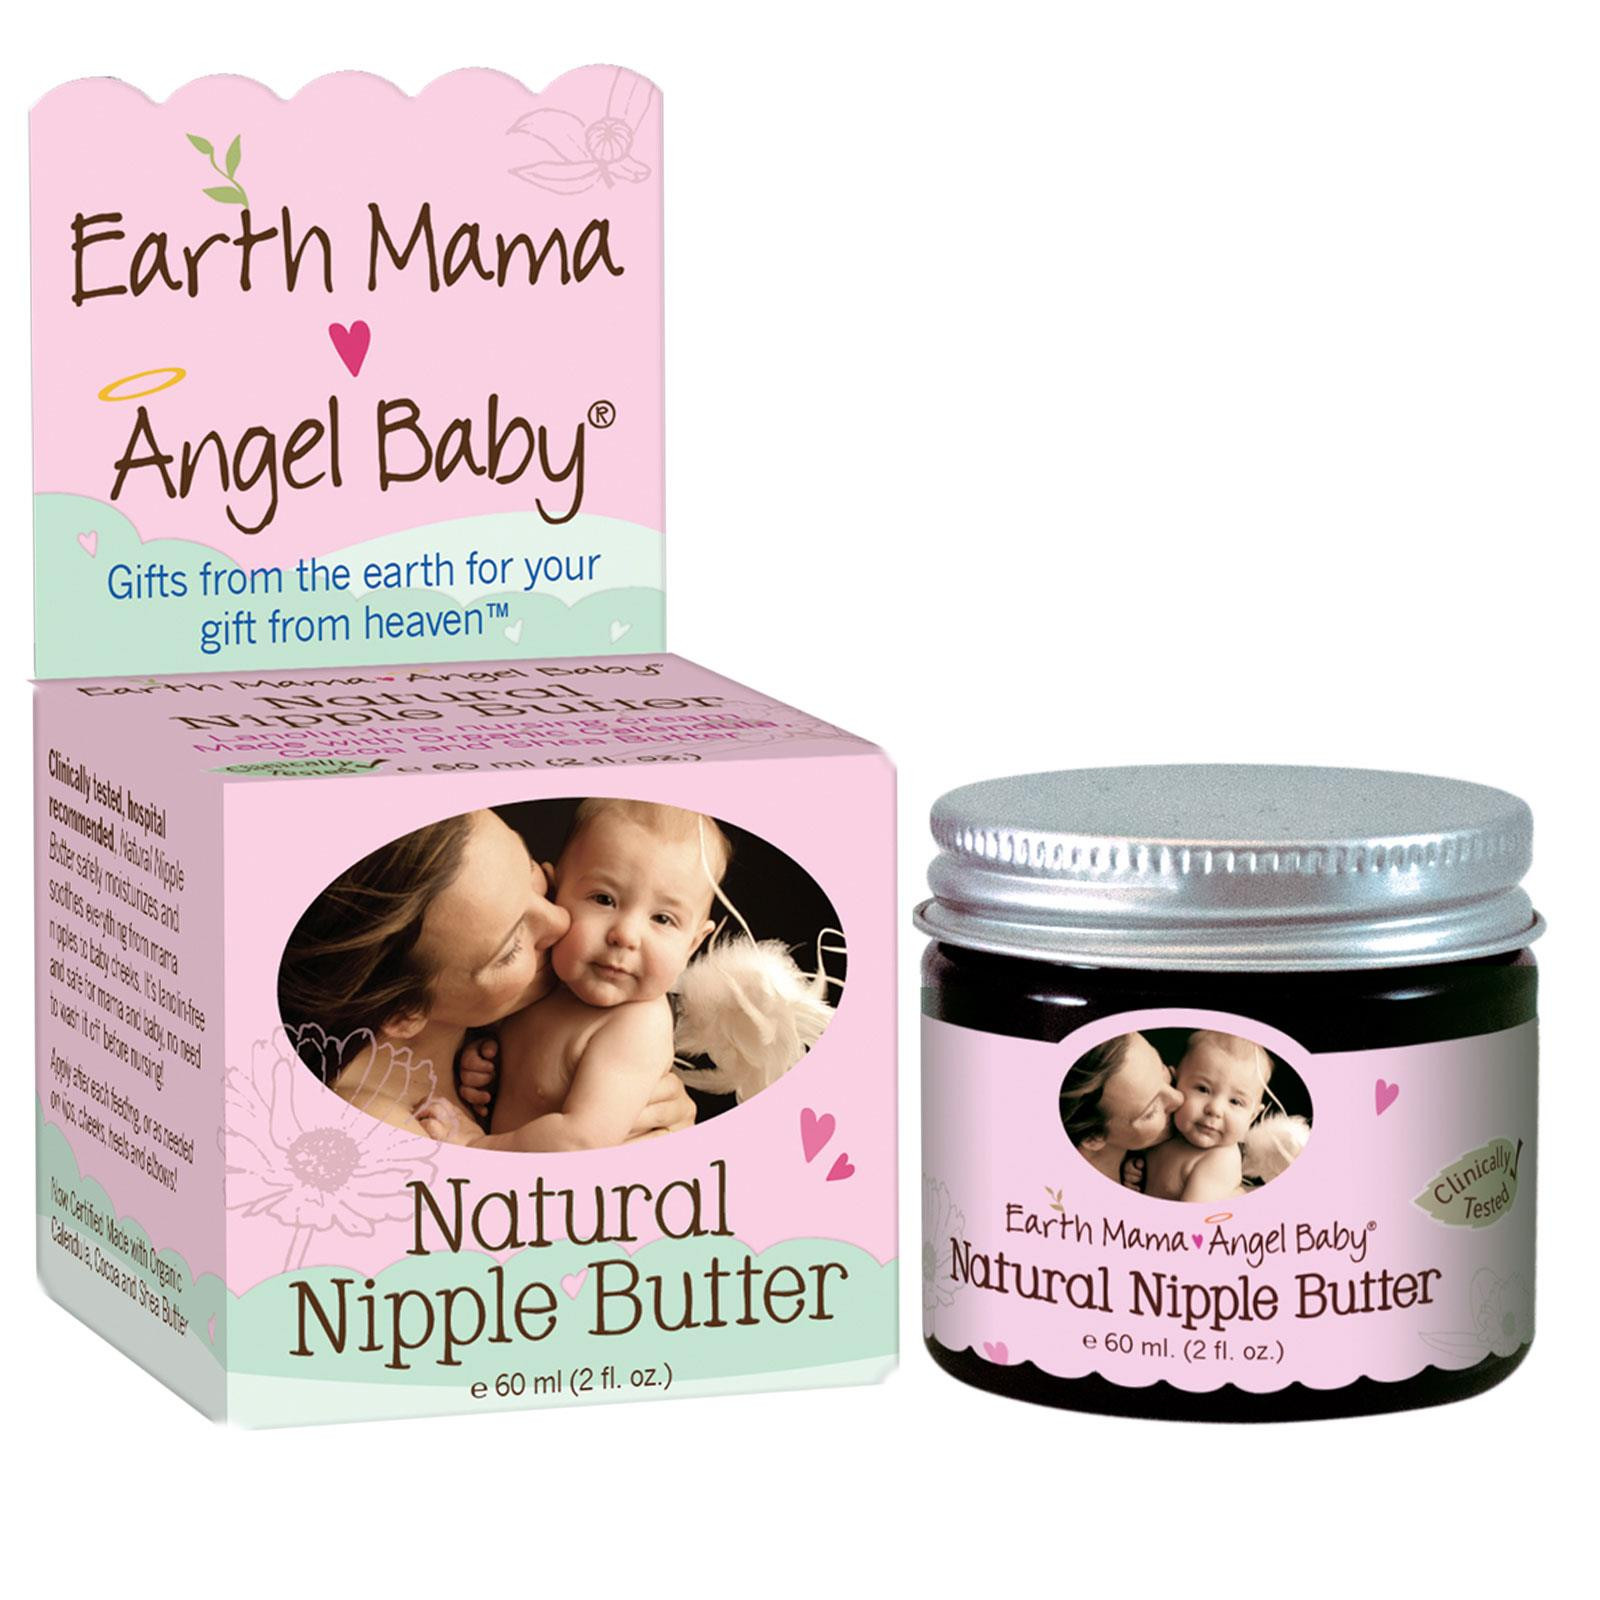 earth-mama-angel-baby-natural-nipple-butter